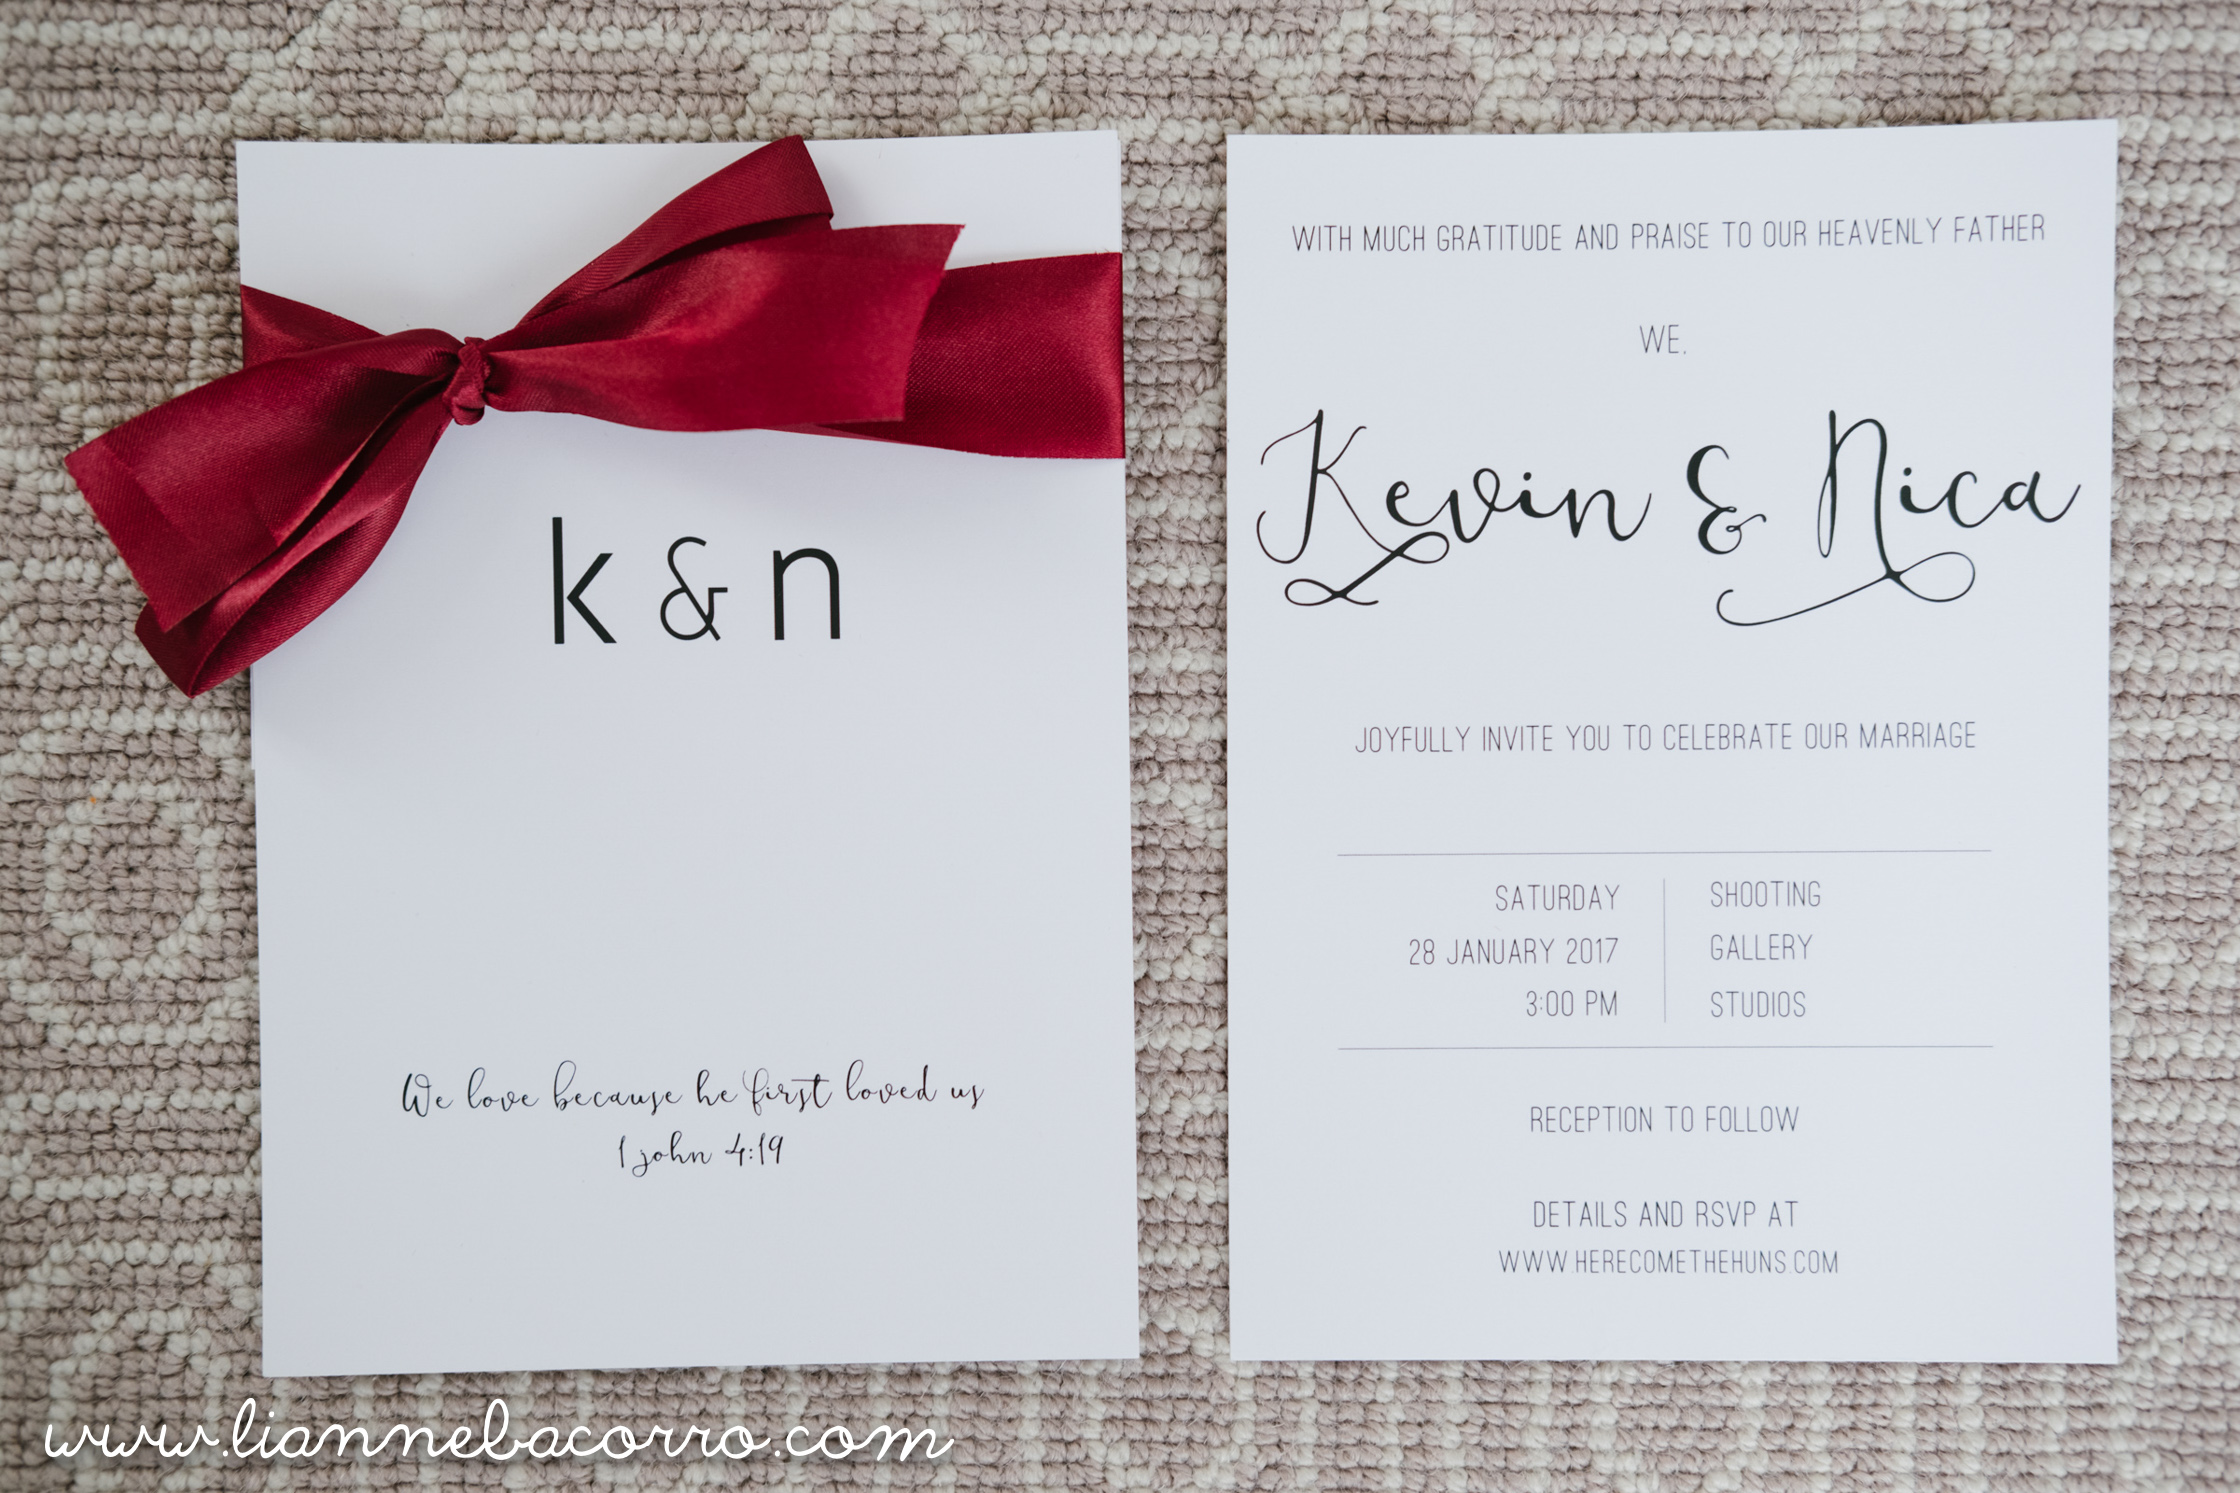 Lianne Bacorro » Photography / InspirationKevin and Nica\'s Wedding ...